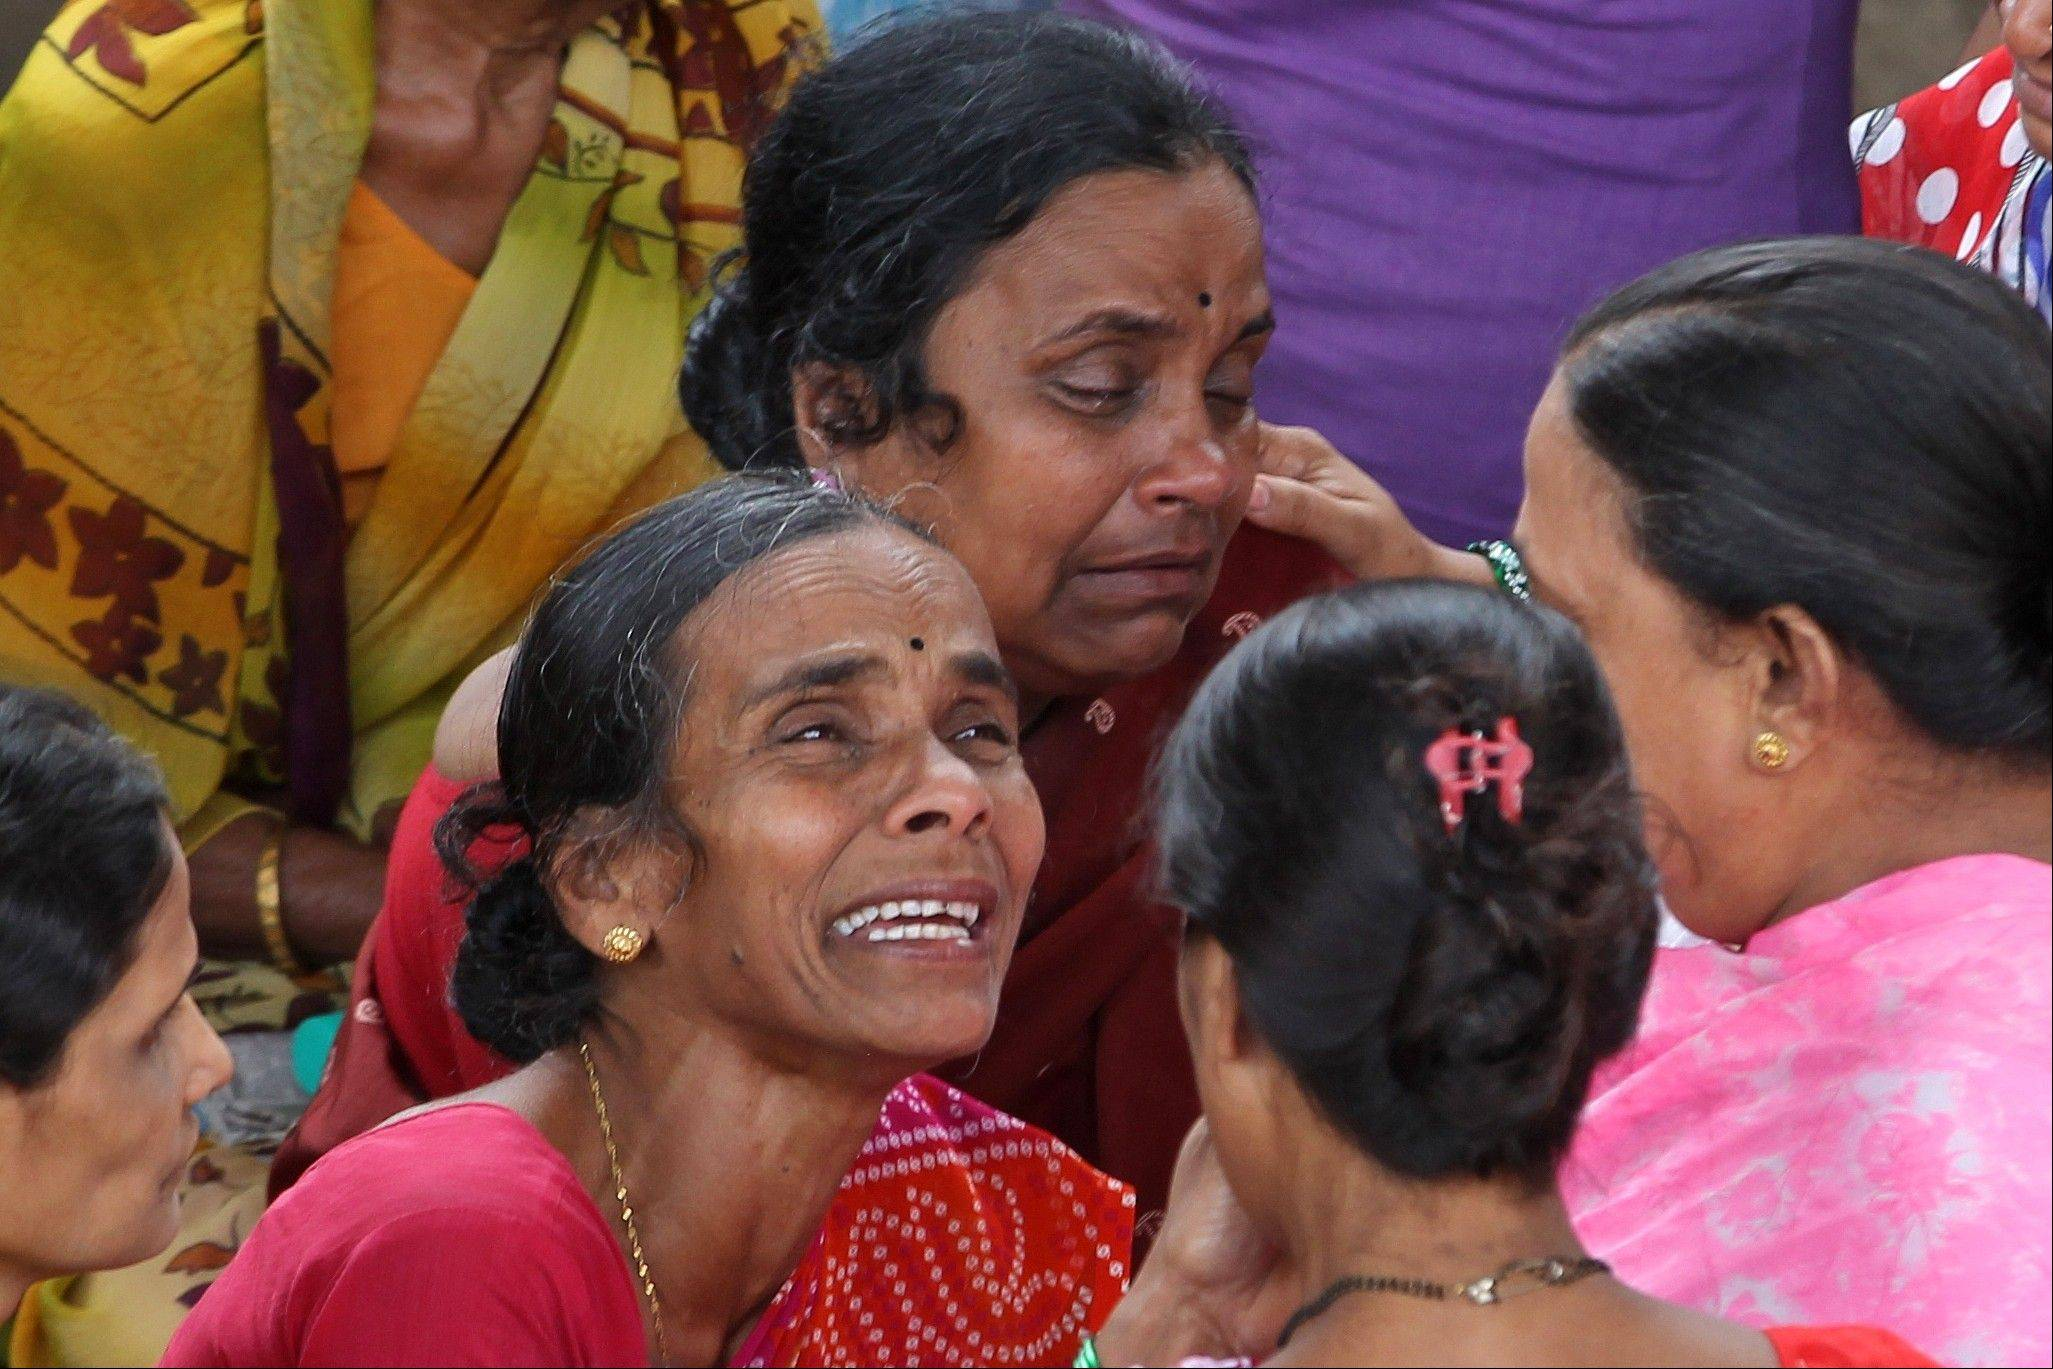 Indian women cry for missing relatives at the site of a building that collapsed, in Mumbai, India, Saturday, Sept. 28. Frantic relatives kept up a vigil at the site of the collapsed apartment building that killed more than 30 people in India's financial capital of Mumbai as the search for survivors grew bleak on Saturday.